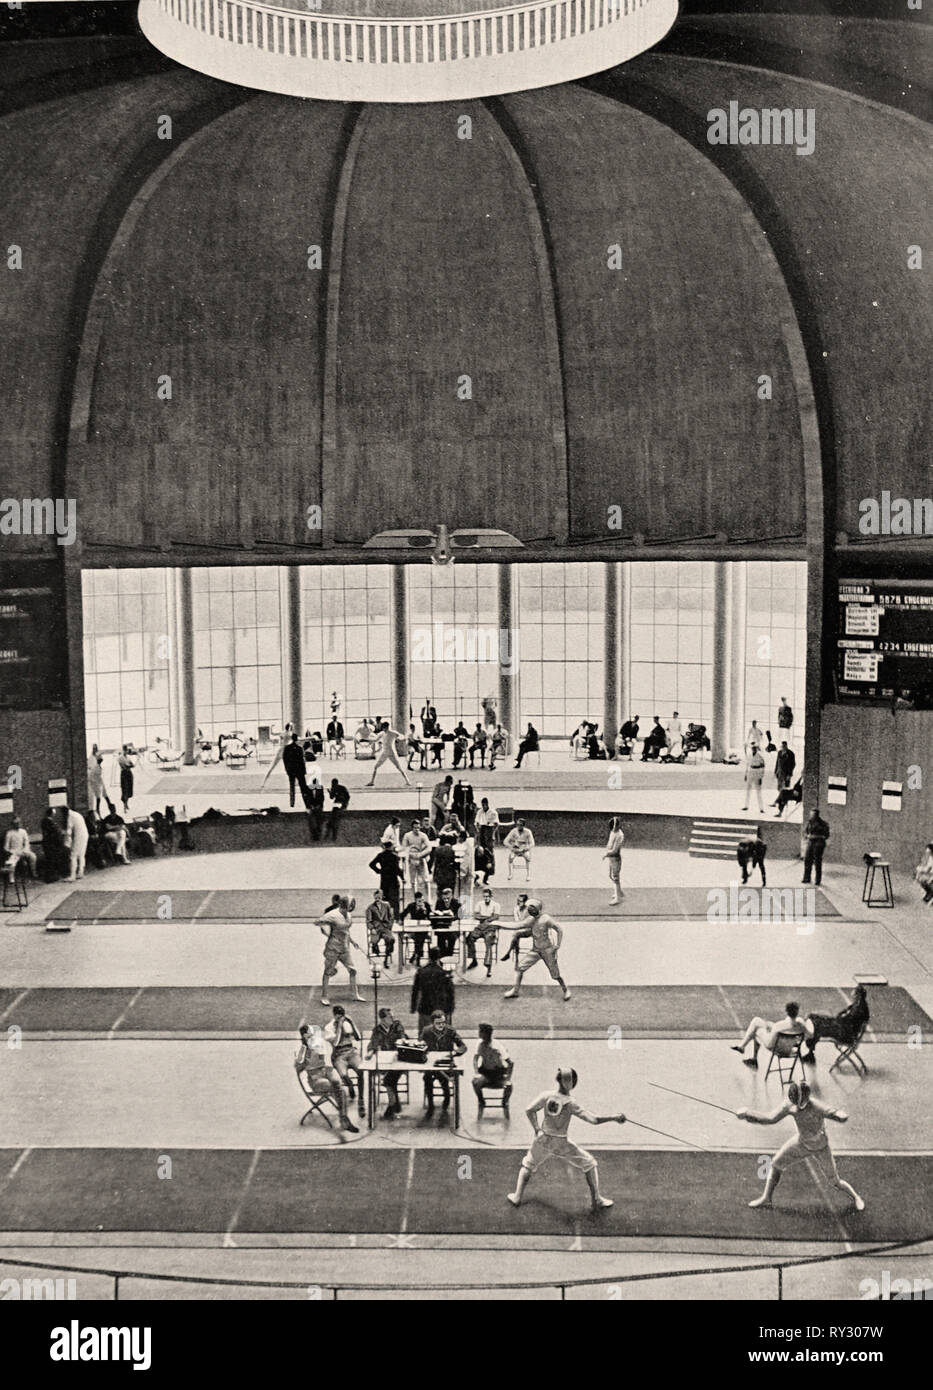 1936 Olympic Games Berlin - Fencing in the Kuppelsaal at the 1936 Berlin Olympic Games Stock Photo